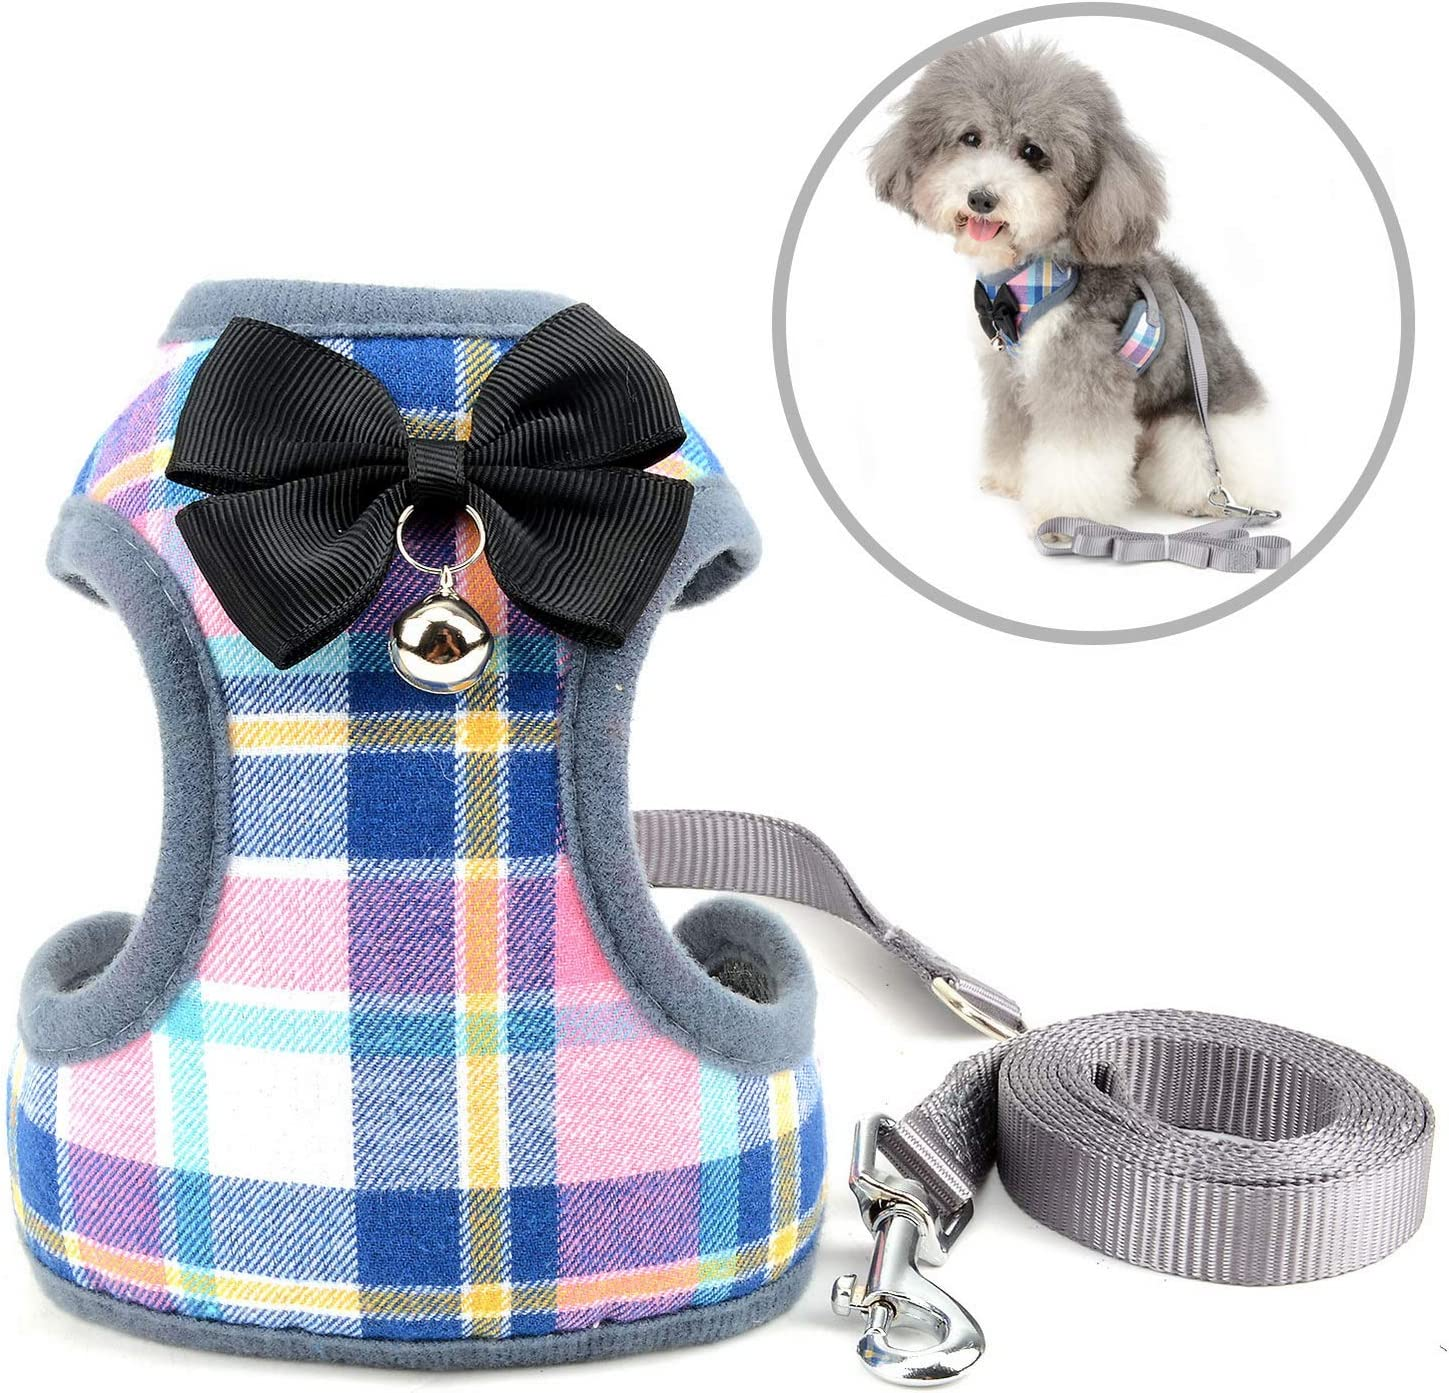 SELMAI Escape Proof Cat Harness with Leash for Small Dogs Plaid Pattern Soft Mesh Vest Harness for Walking Training Leads No Pull for Puppy Chihuahua Dachshund Hiking Jogging Outdoor